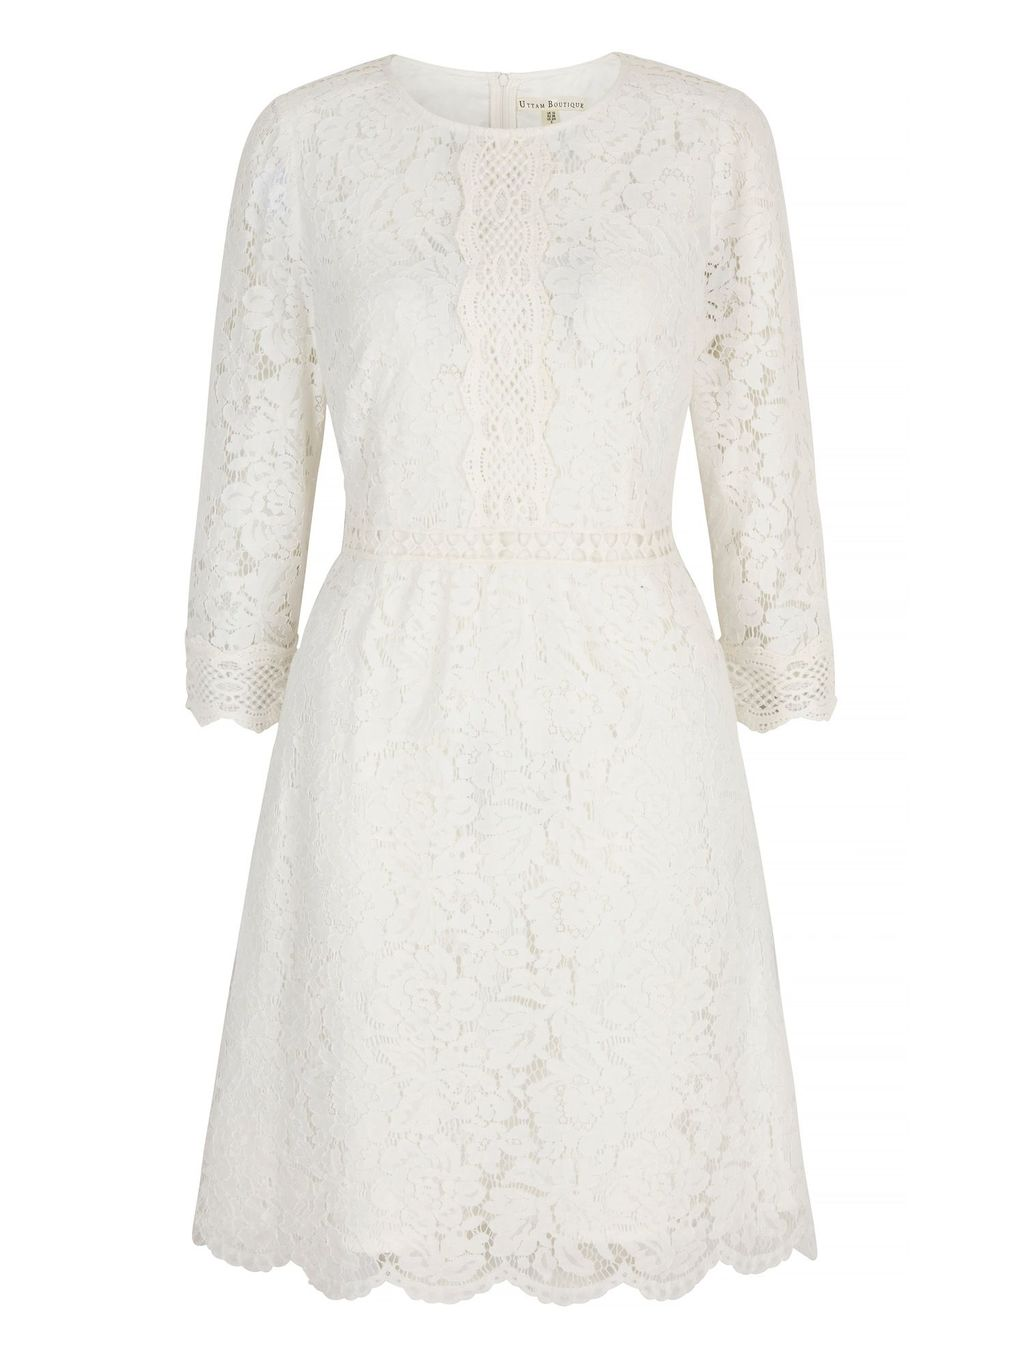 Mixed Lace Dress, Cream - neckline: round neck; predominant colour: ivory/cream; occasions: evening, occasion; length: on the knee; fit: fitted at waist & bust; style: fit & flare; fibres: polyester/polyamide - mix; sleeve length: long sleeve; sleeve style: standard; texture group: lace; pattern type: fabric; pattern size: standard; pattern: patterned/print; season: s/s 2016; wardrobe: event